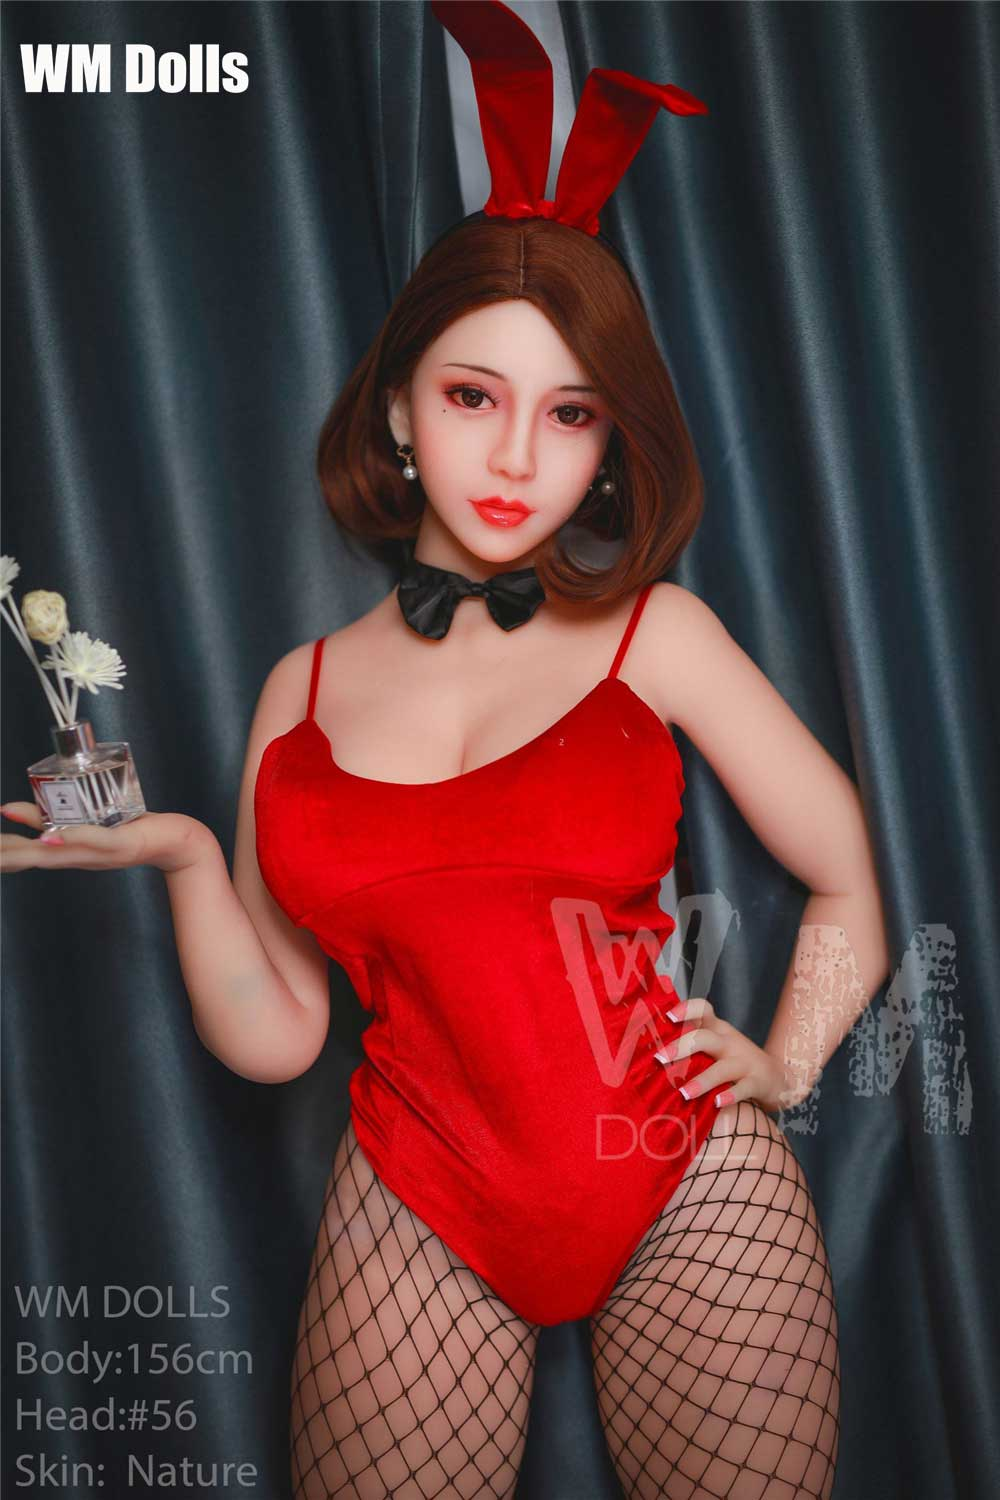 Big breasted sex doll with one hand on hips